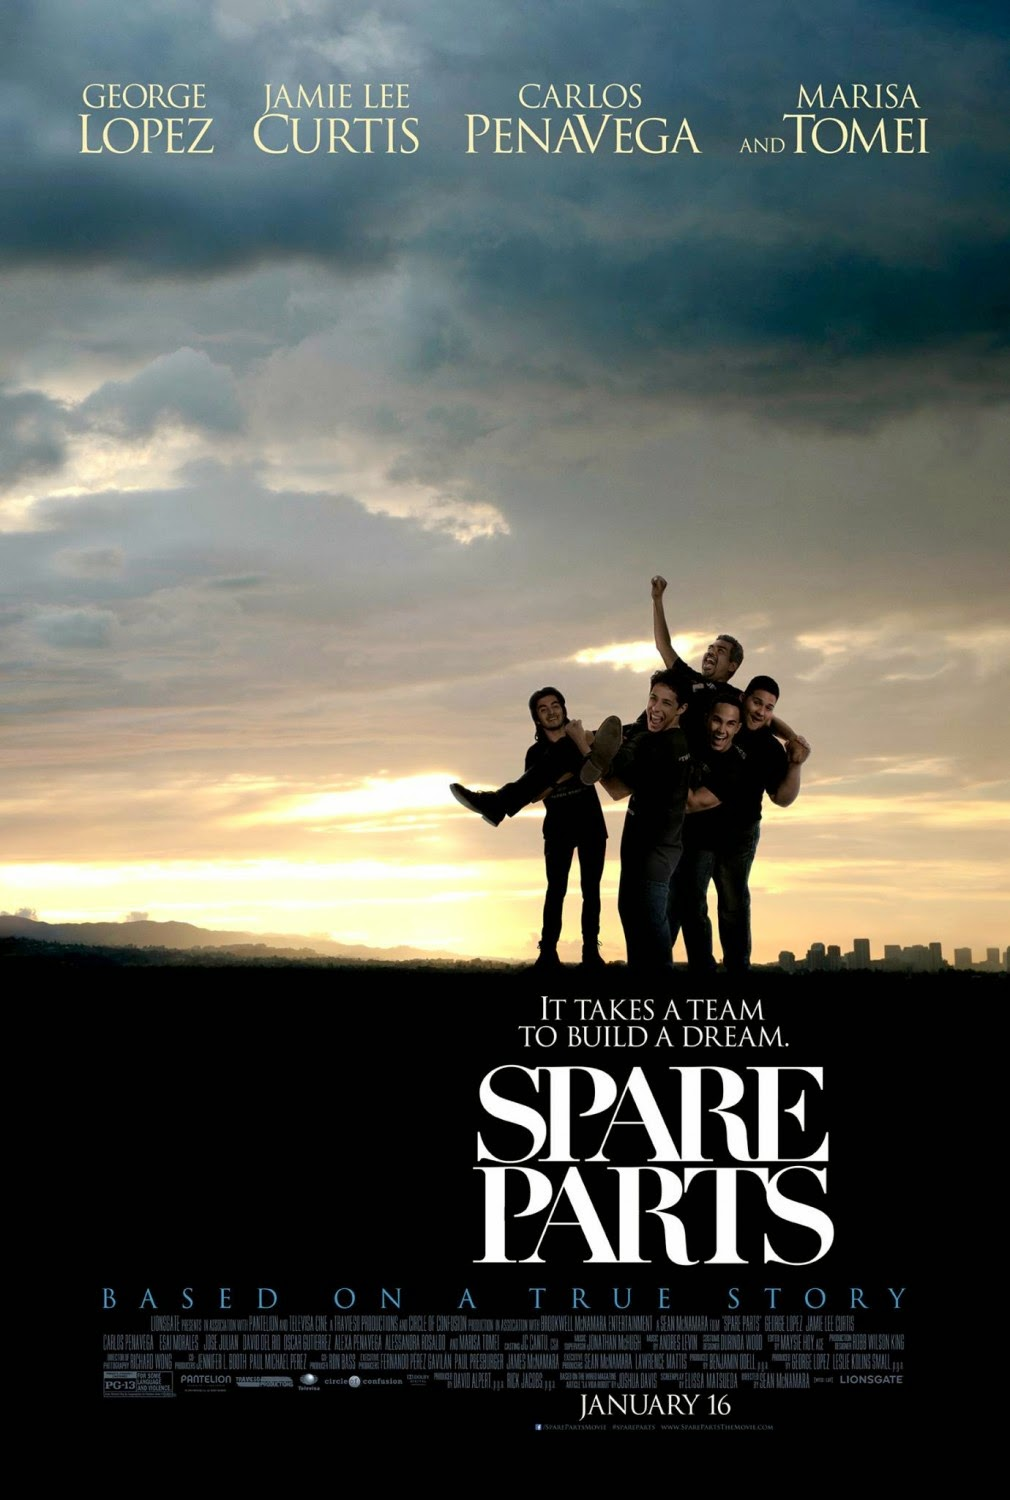 Spare Parts also Spare Parts in addition Spare Parts 2015 in addition 365 Days Of Moviepass Review Spare Parts likewise Oscar Gutierrez Visits Psja Lbj Middle School In Pharr Tx To Talk About Spare Parts Movie. on oscar gutierrez spare parts movie